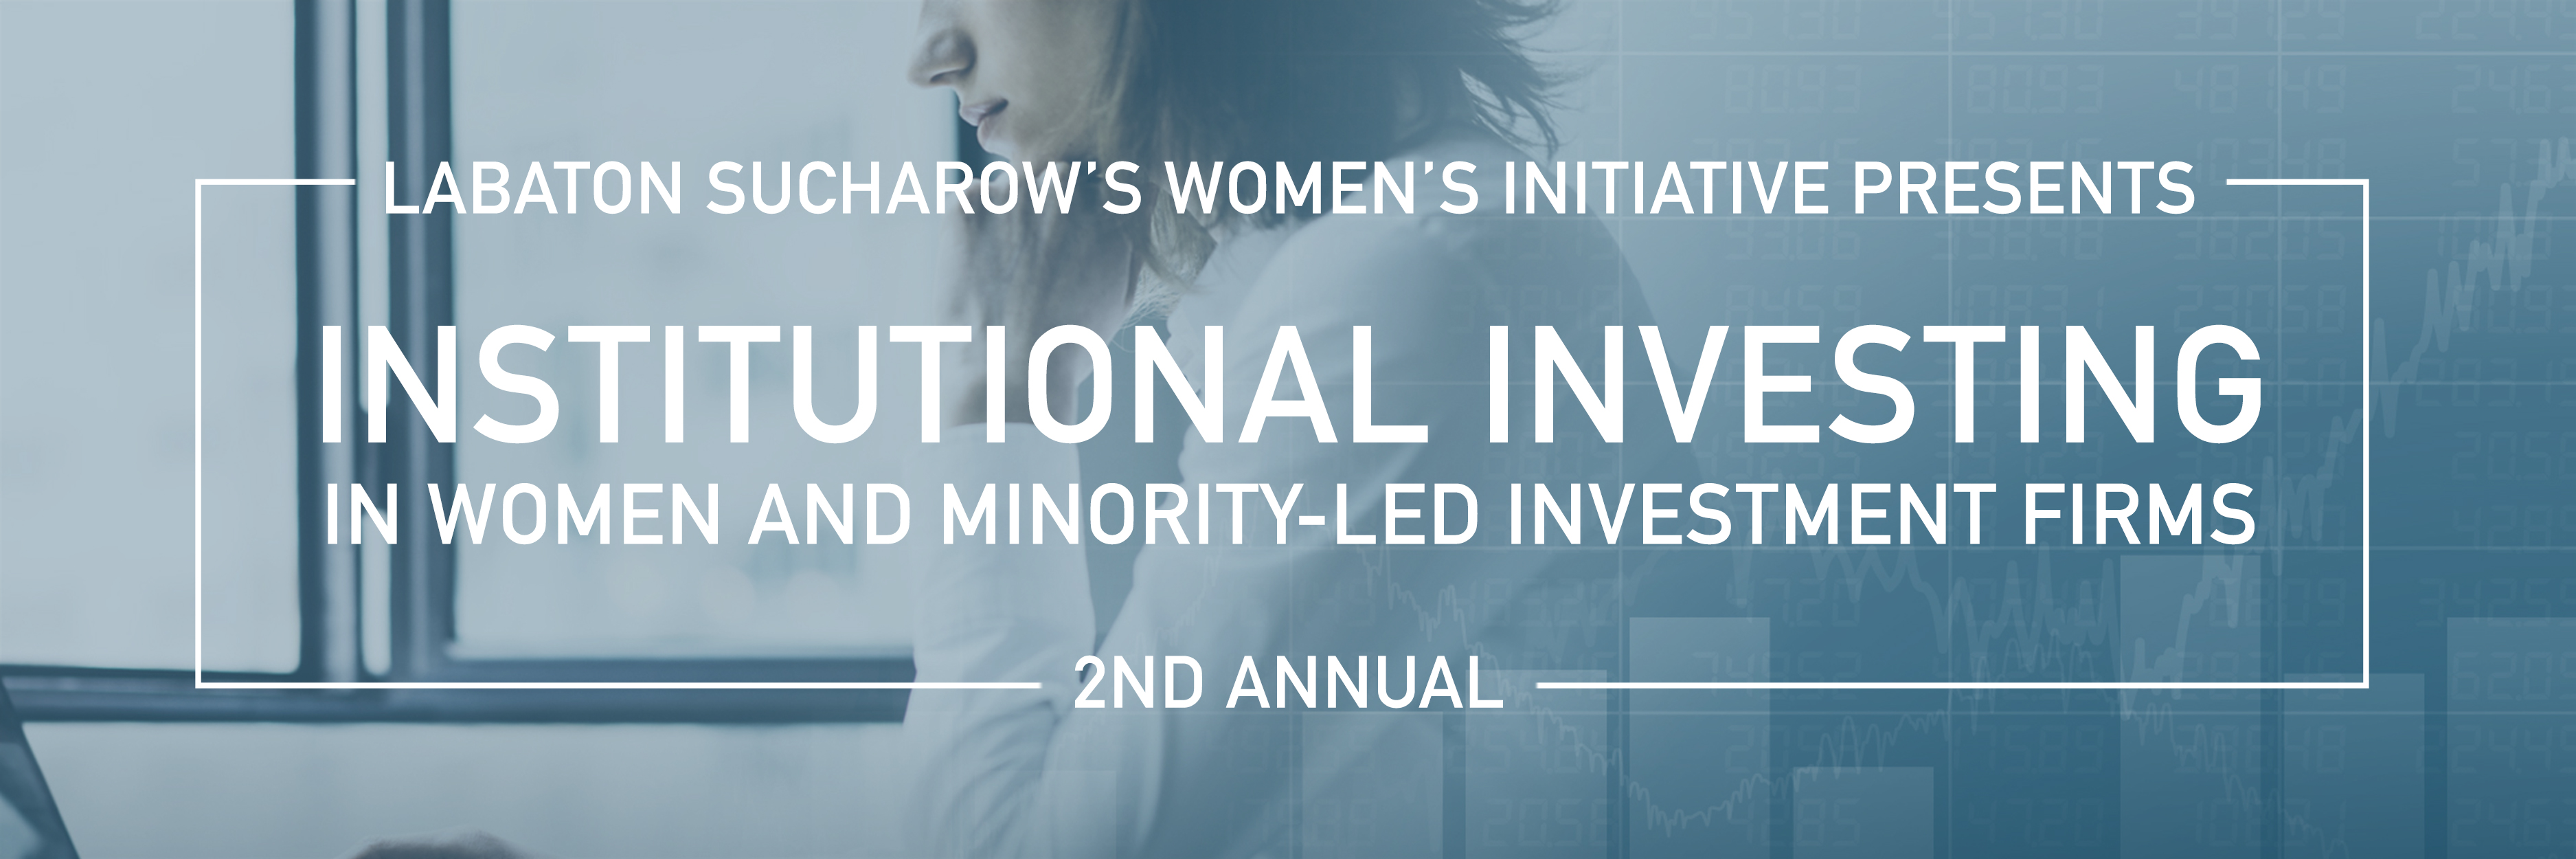 2nd Annual: Institutional Investing in Women and Minority-Owned Investment Firms